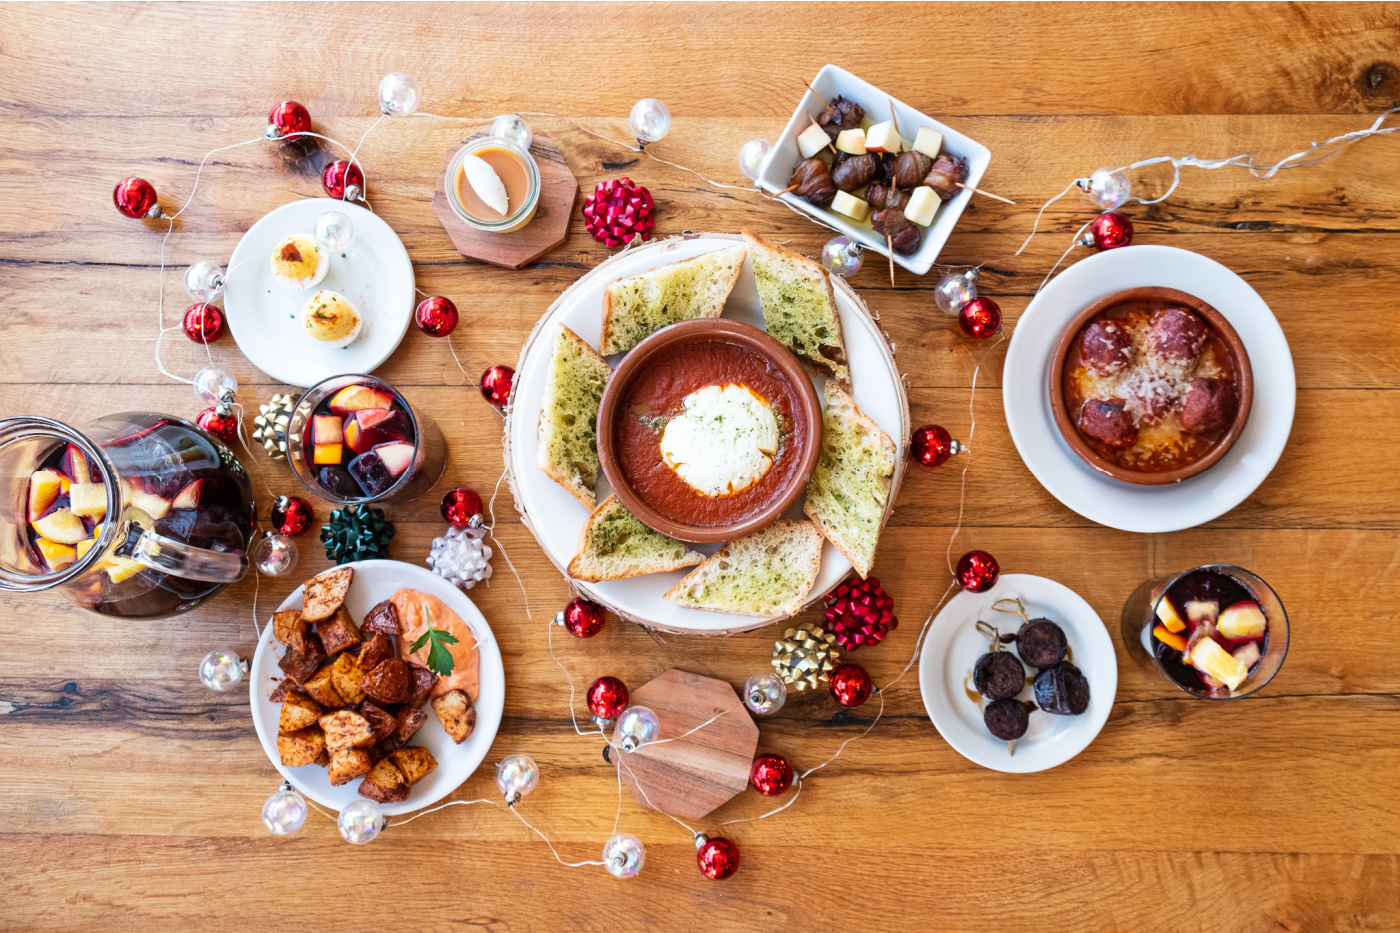 Spanish tapas with goat cheese, deviled eggs, spicy potatoes and holiday ornaments strung along a dining table.